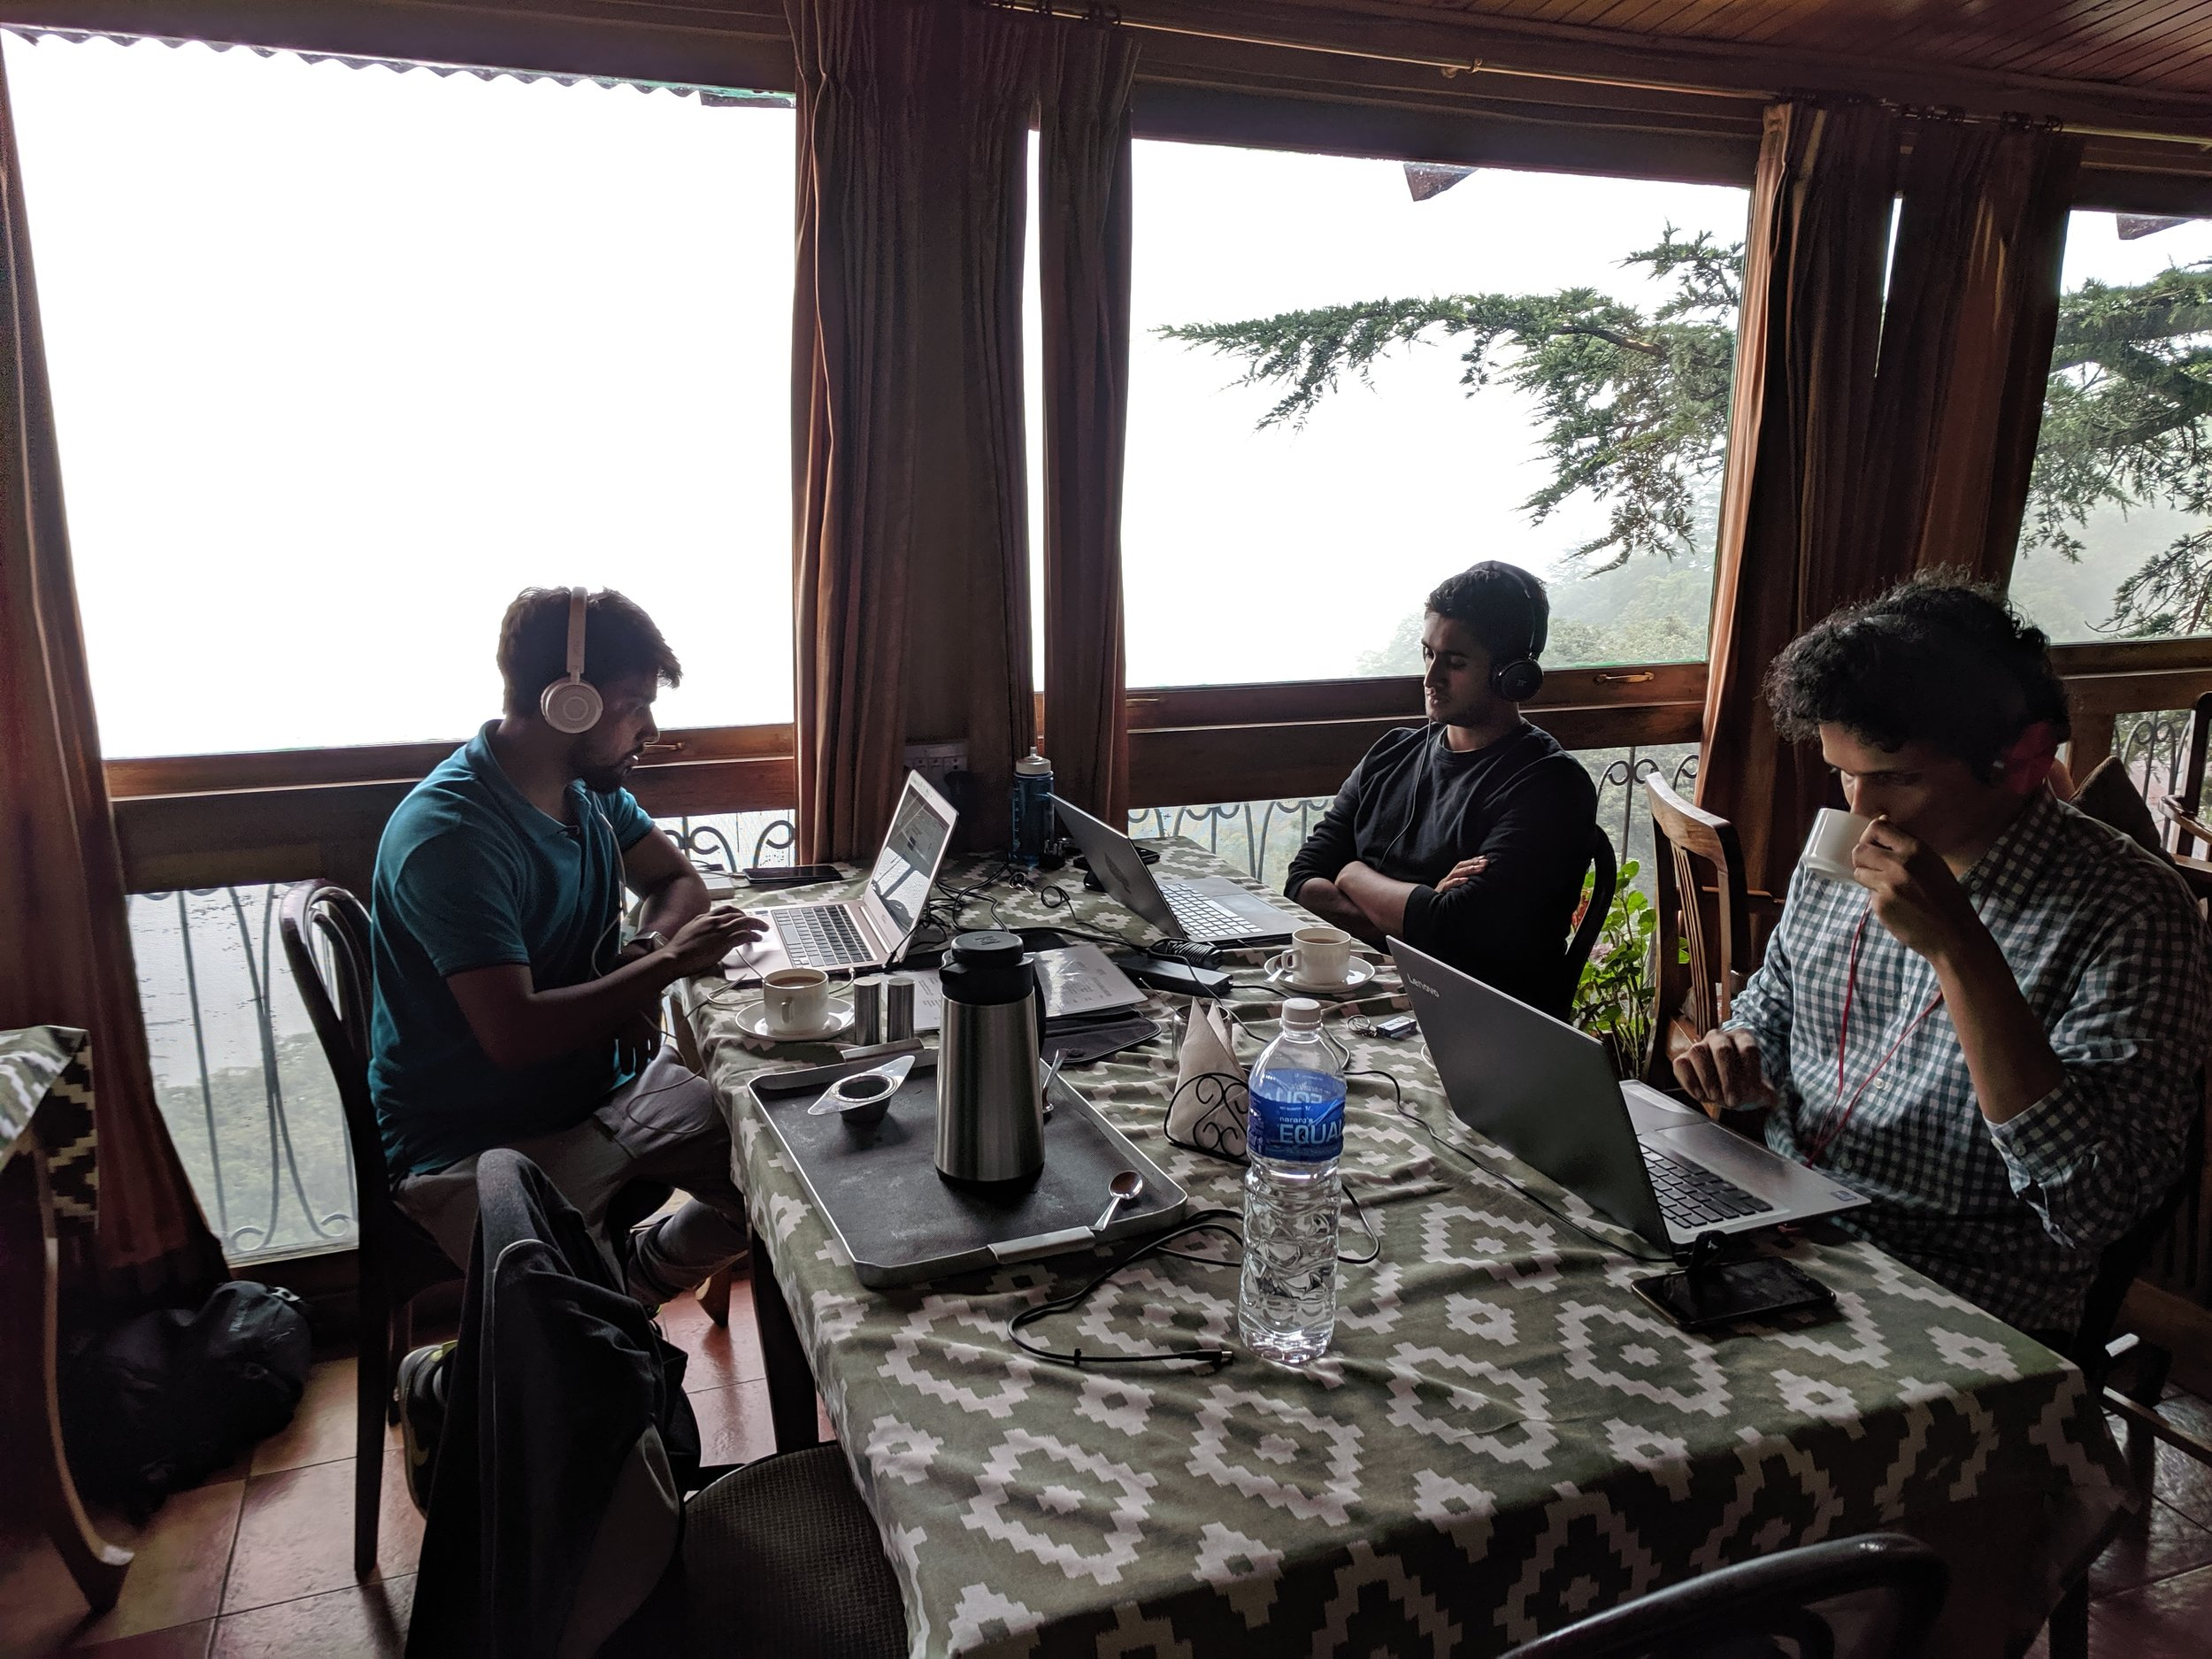 The IDinsight team works in Shimla, Himachal Pradesh.